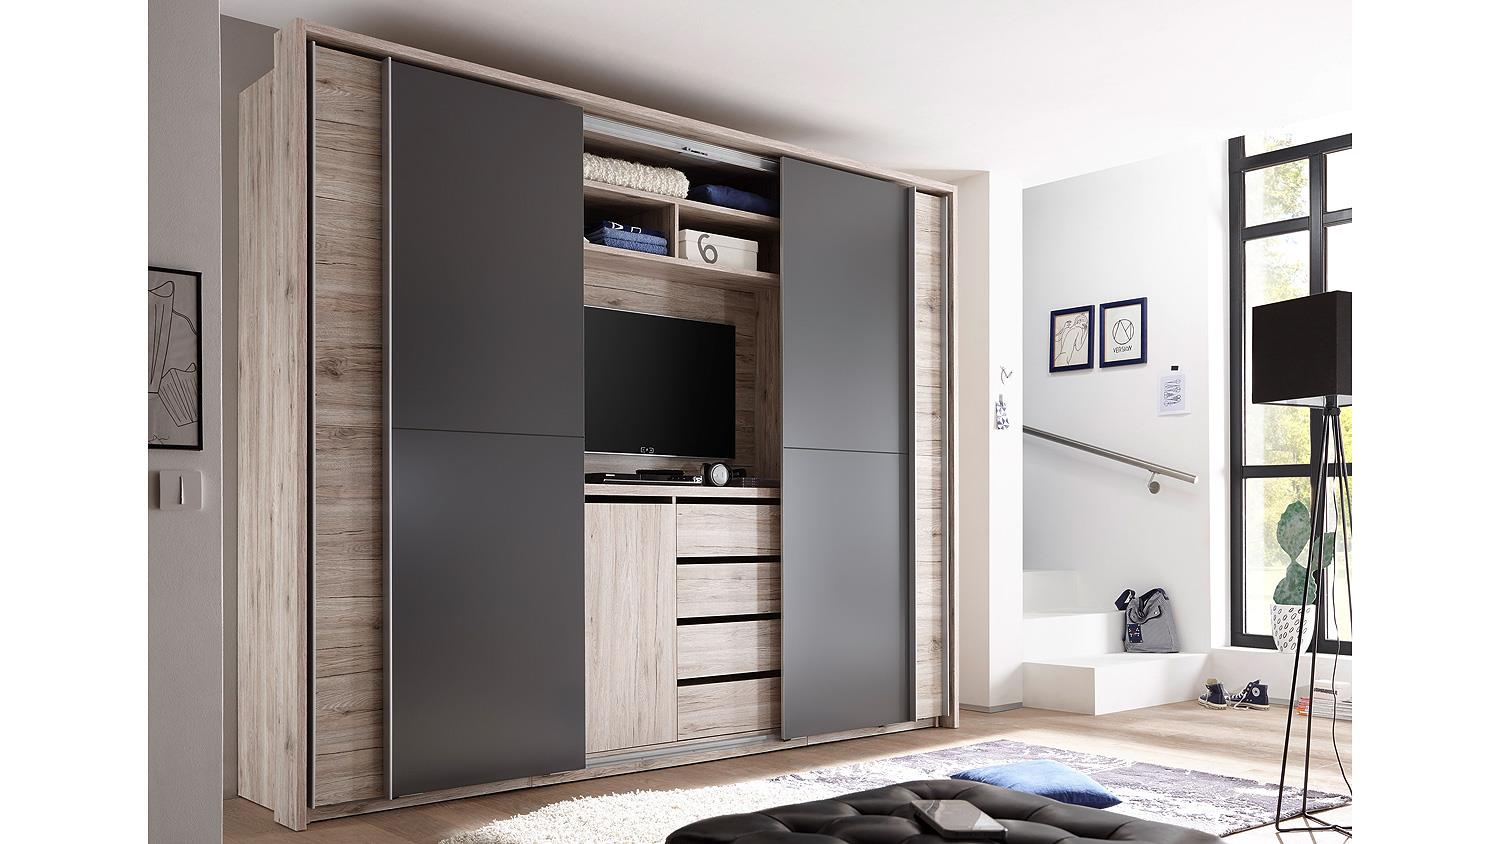 schwebetren schrank cinema schrank sandeiche lava tvfach with schwebetren schrank latest. Black Bedroom Furniture Sets. Home Design Ideas